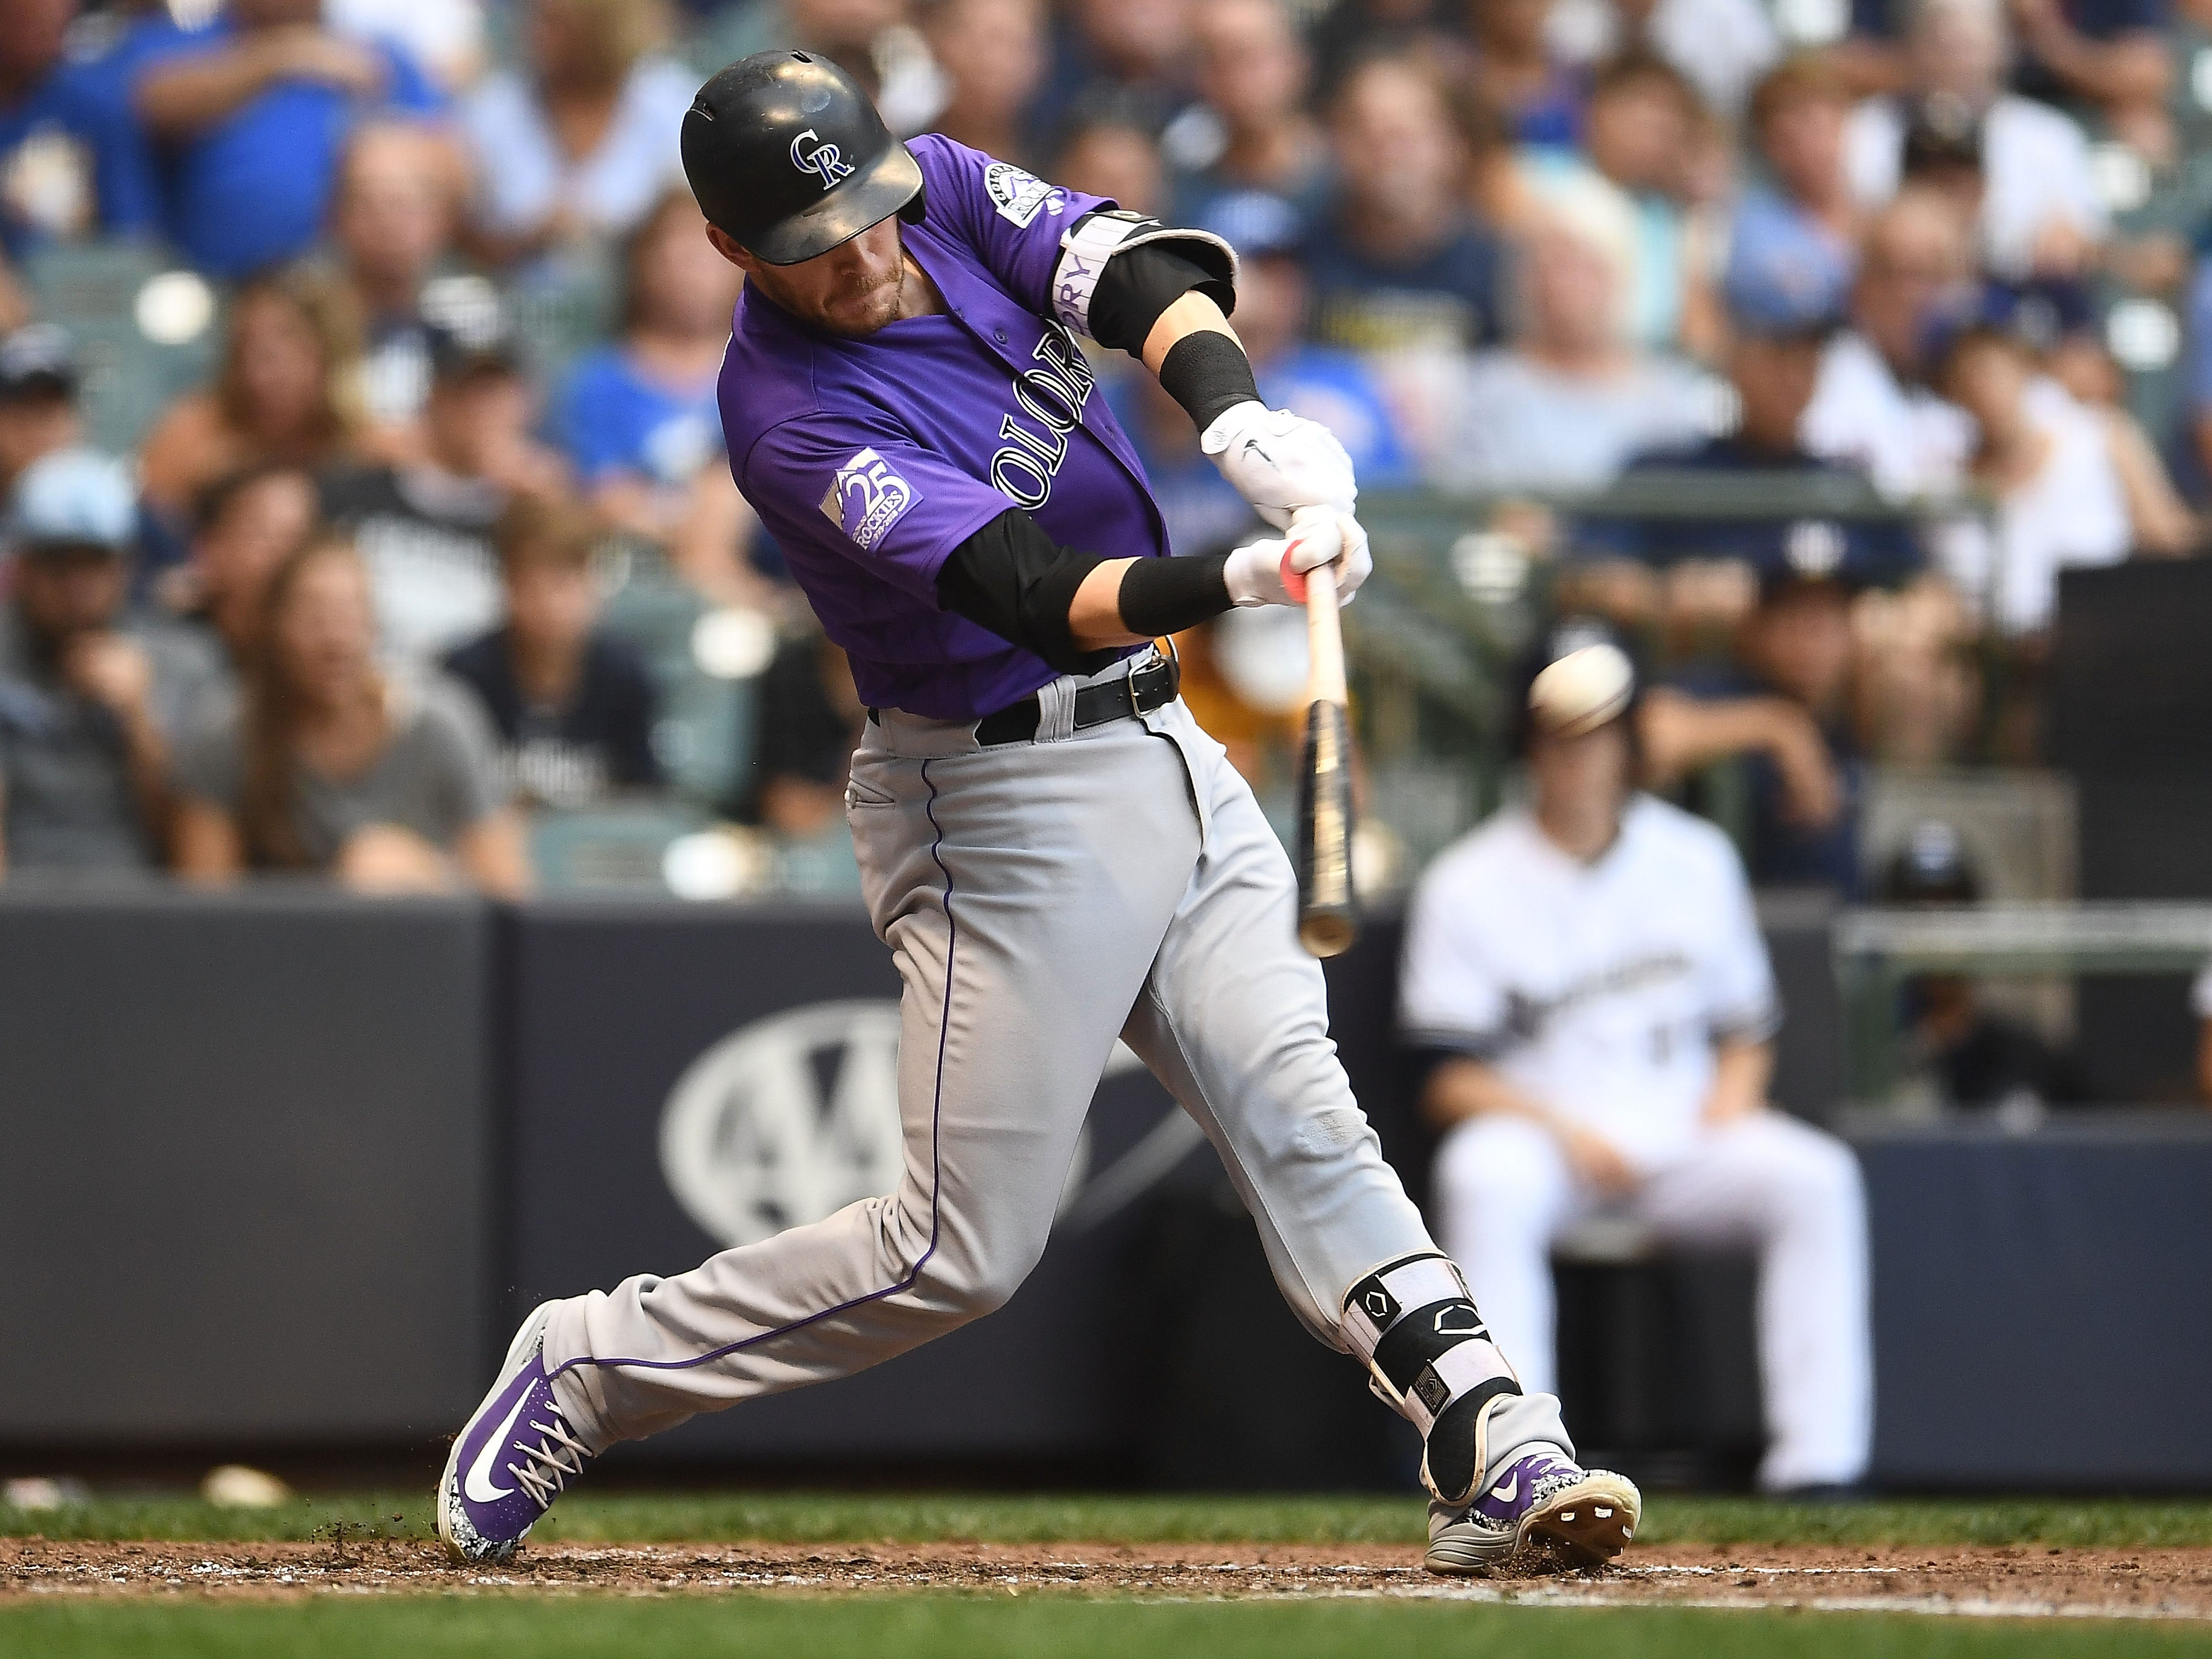 MILWAUKEE, WI - AUGUST 04:  Trevor Story #27 of the Colorado Rockies hits a two run home run during the fourth inning of a game against the Milwaukee Brewers at Miller Park on August 4, 2018 in Milwaukee, Wisconsin.  (Photo by Stacy Revere/Getty Images)